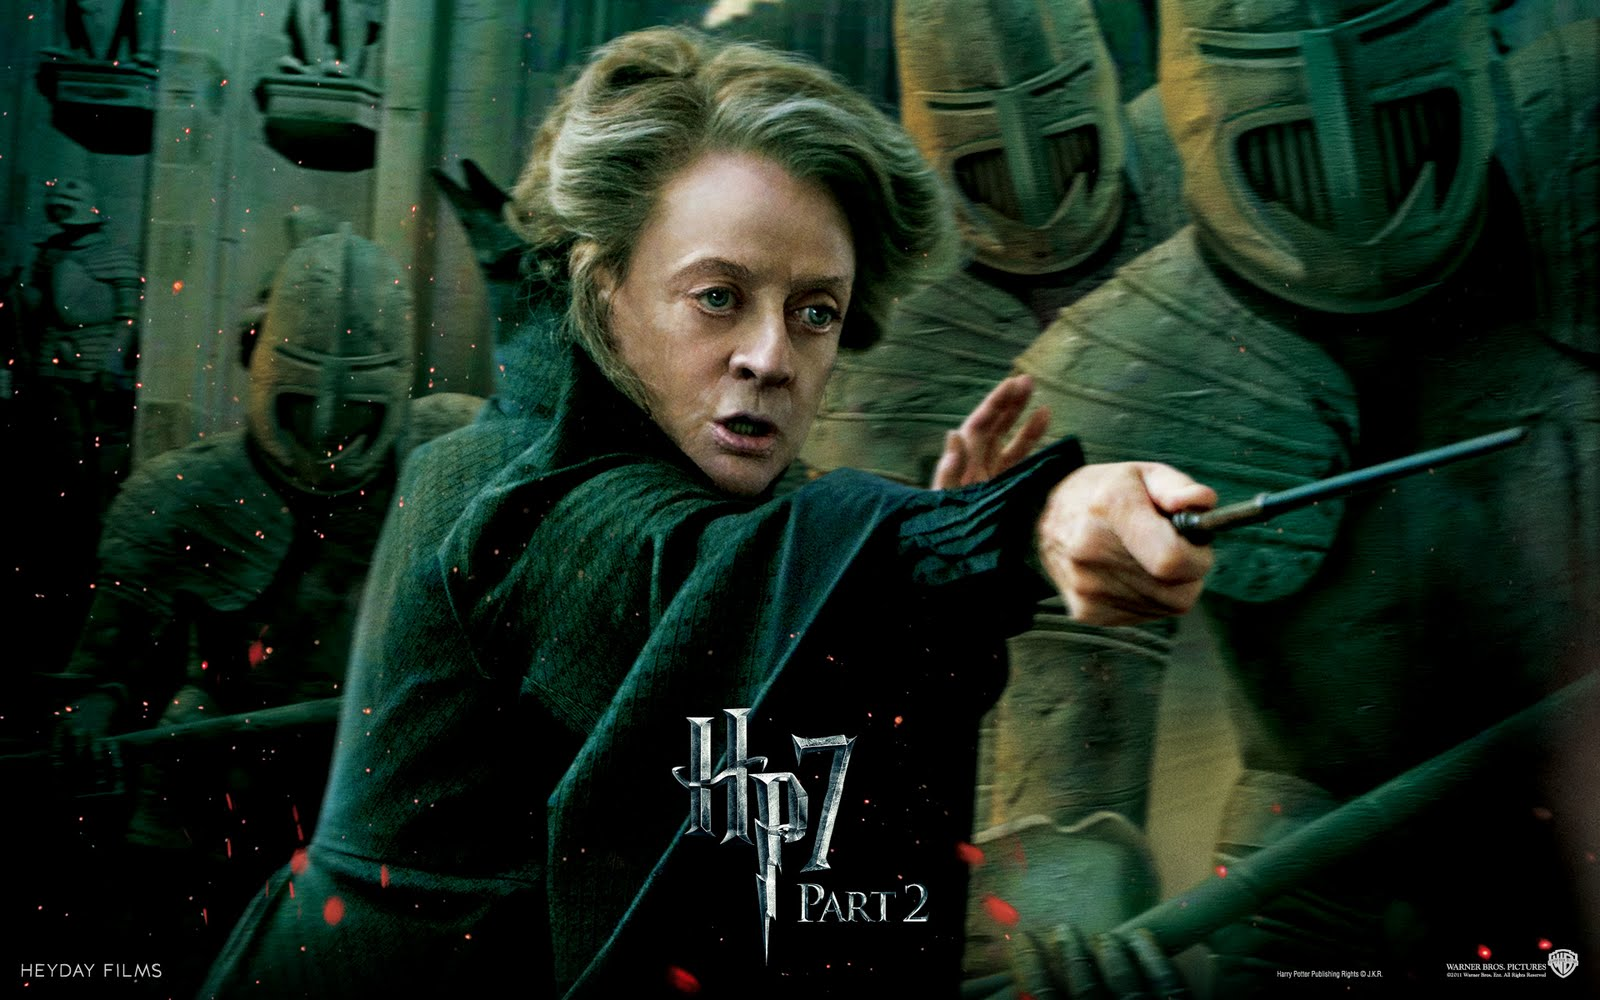 Harry Potter Deathly Hallows Part II Wallpapers HD